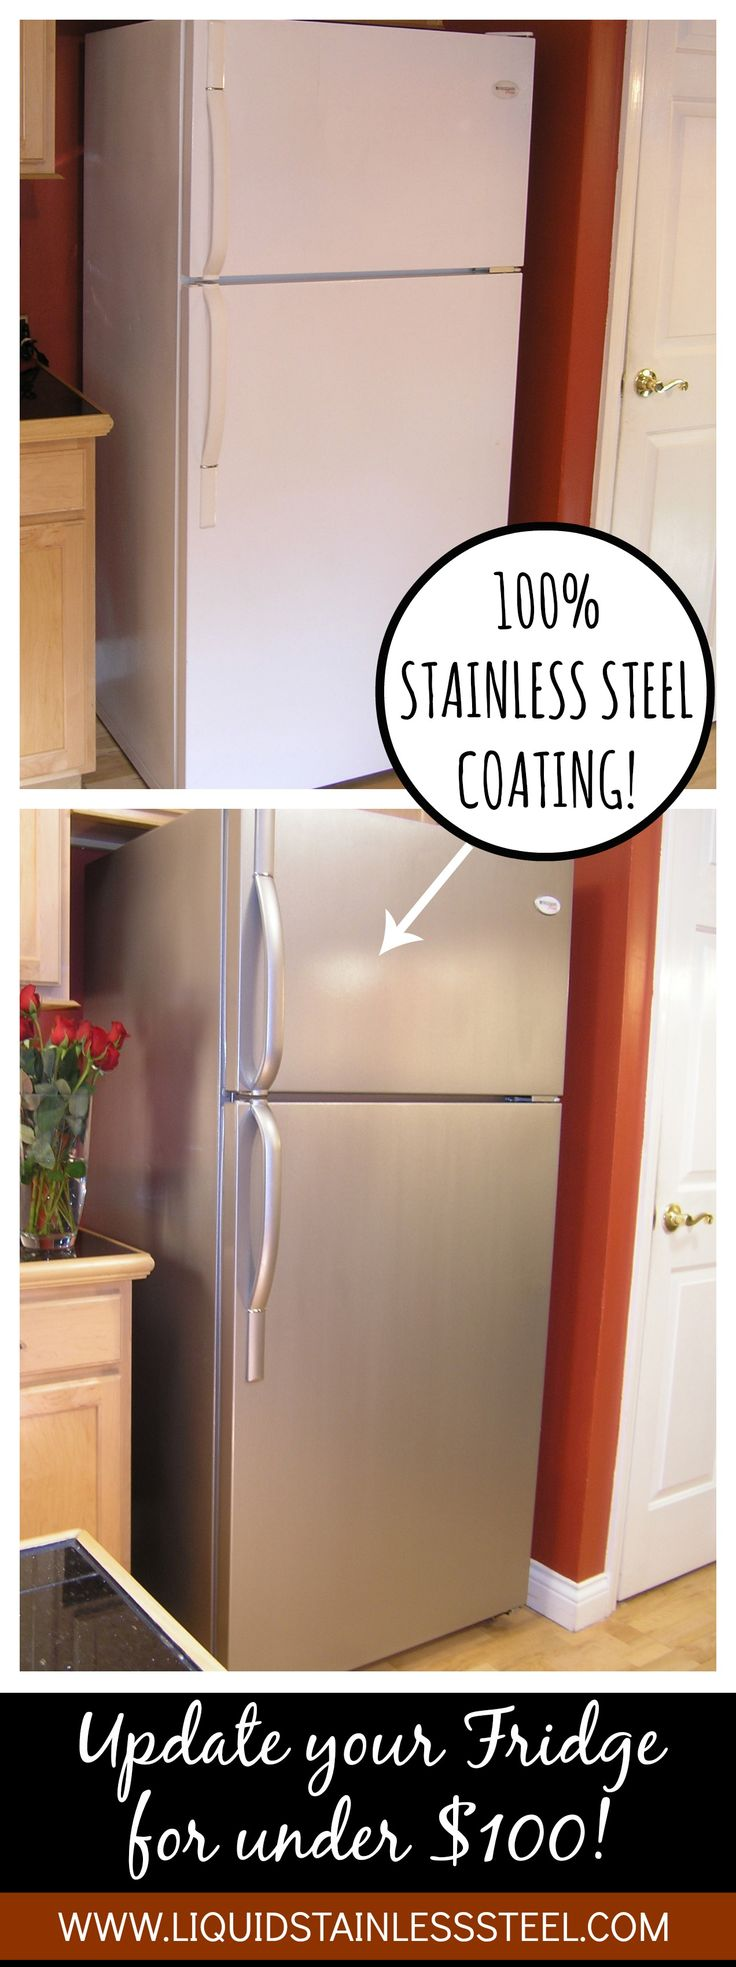 Design Stainless Steel Paint best 25 stainless steel paint ideas on pinterest before you rush out to replace a well working fridge just for the aesthetic value refrigeratorfaux steel